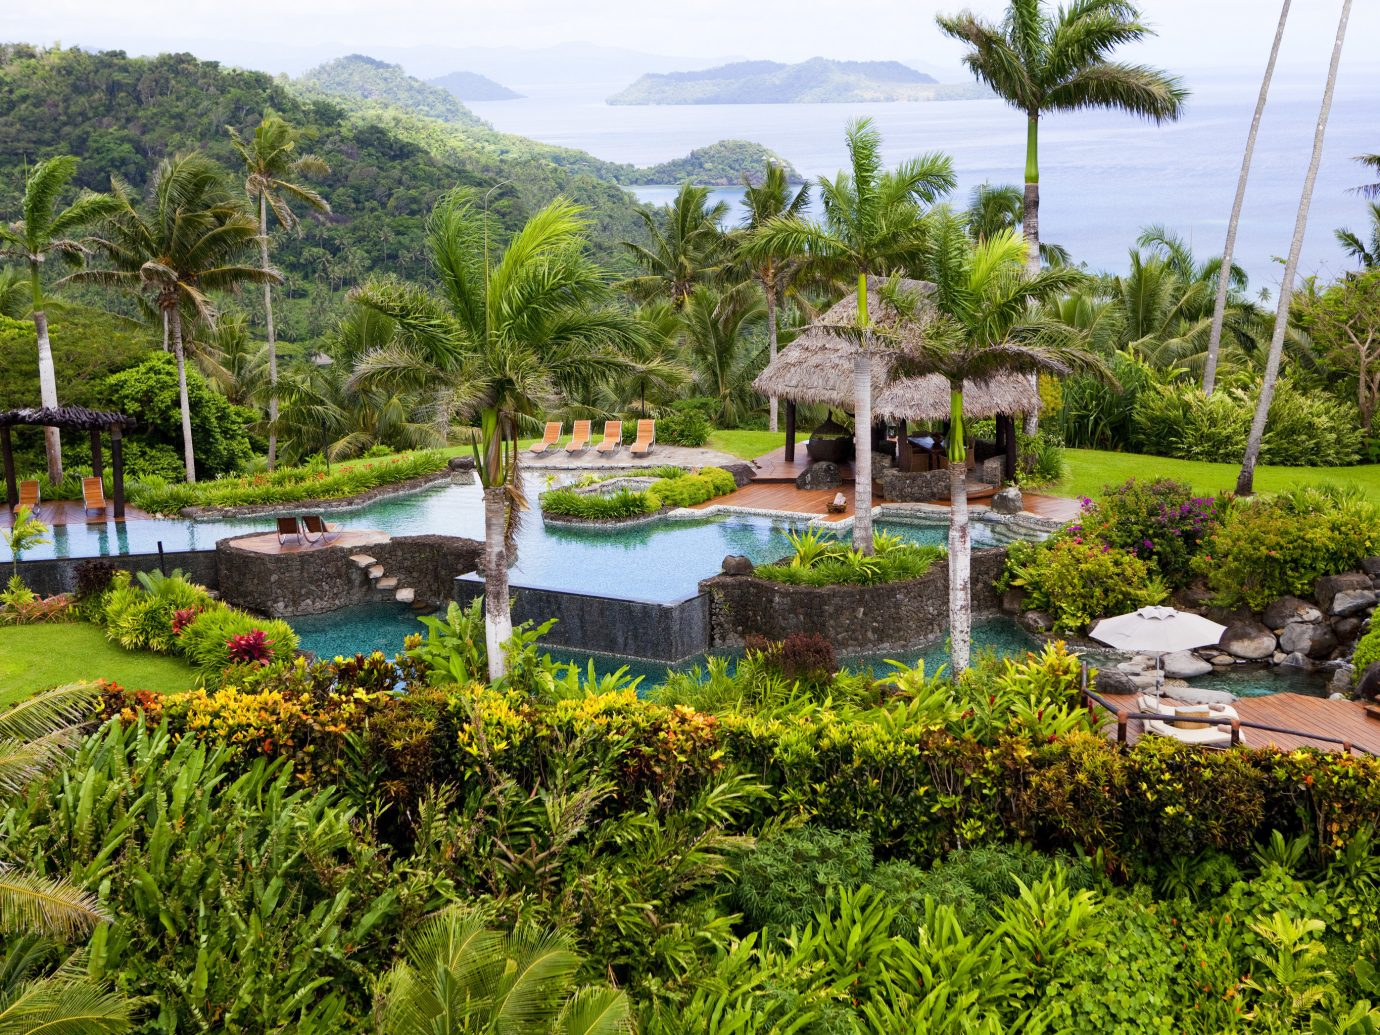 All-Inclusive Resorts Hotels Luxury Travel tree outdoor grass sky Resort botany estate Garden Nature arecales botanical garden swimming pool Jungle plant backyard tropics lush bushes surrounded